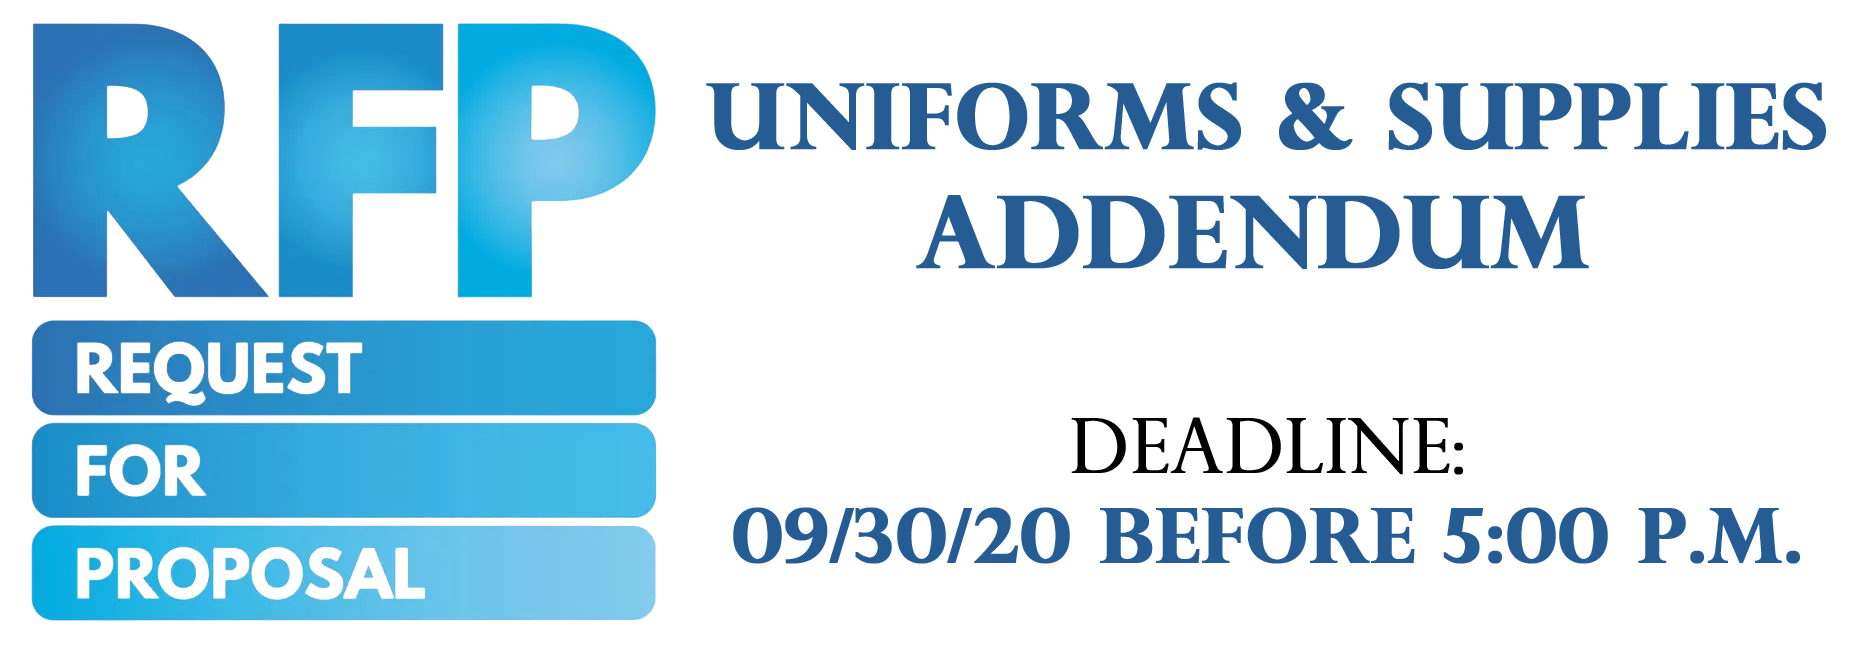 RFP ADDENDUM image for uniforms and supplies